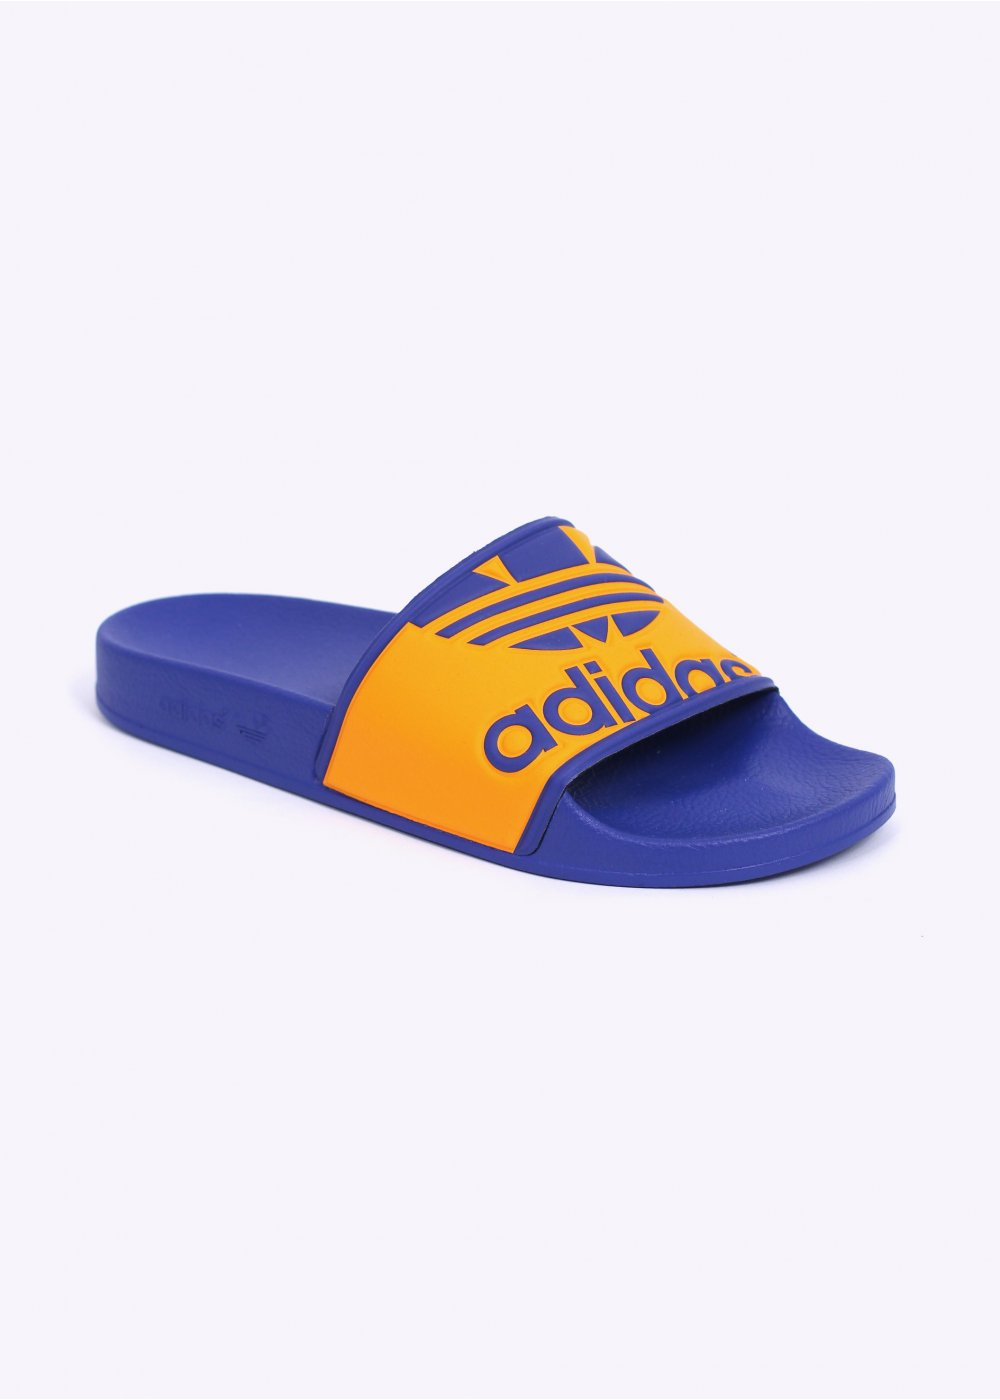 f3e83dd0d37250 purple adidas sandals on sale   OFF39% Discounts